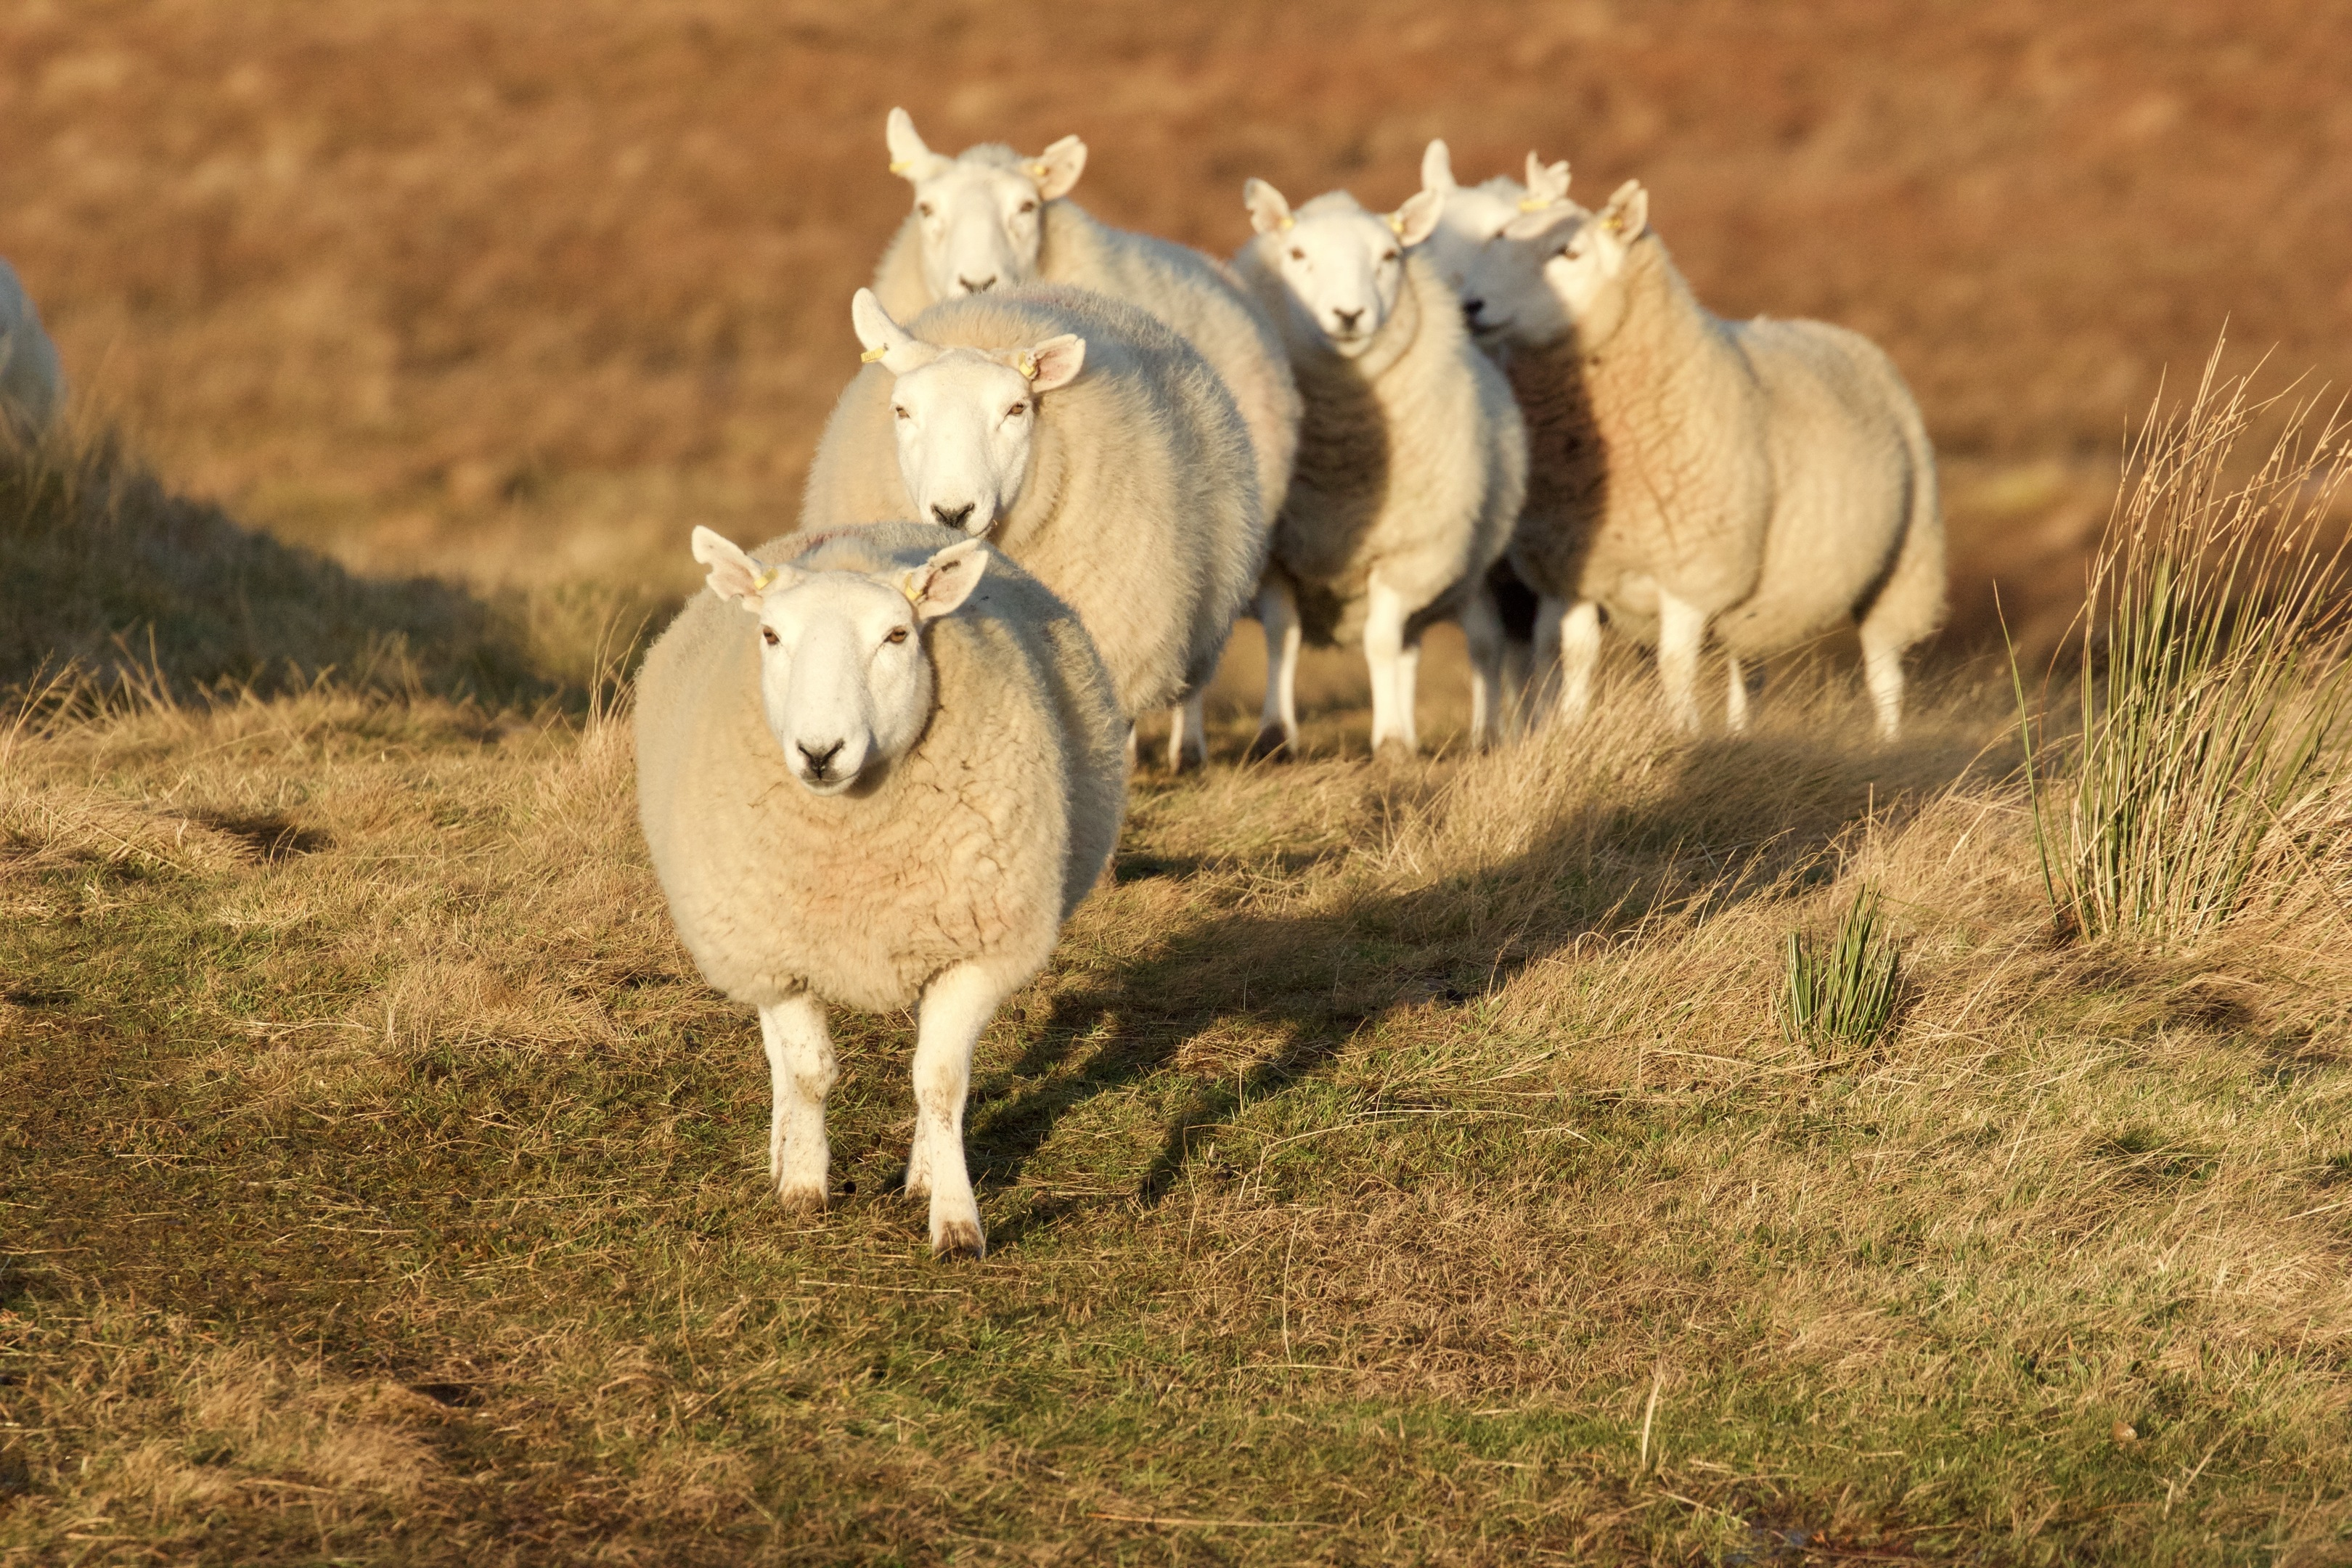 One of the research projects will focus on finding a test for tickborne fever in sheep